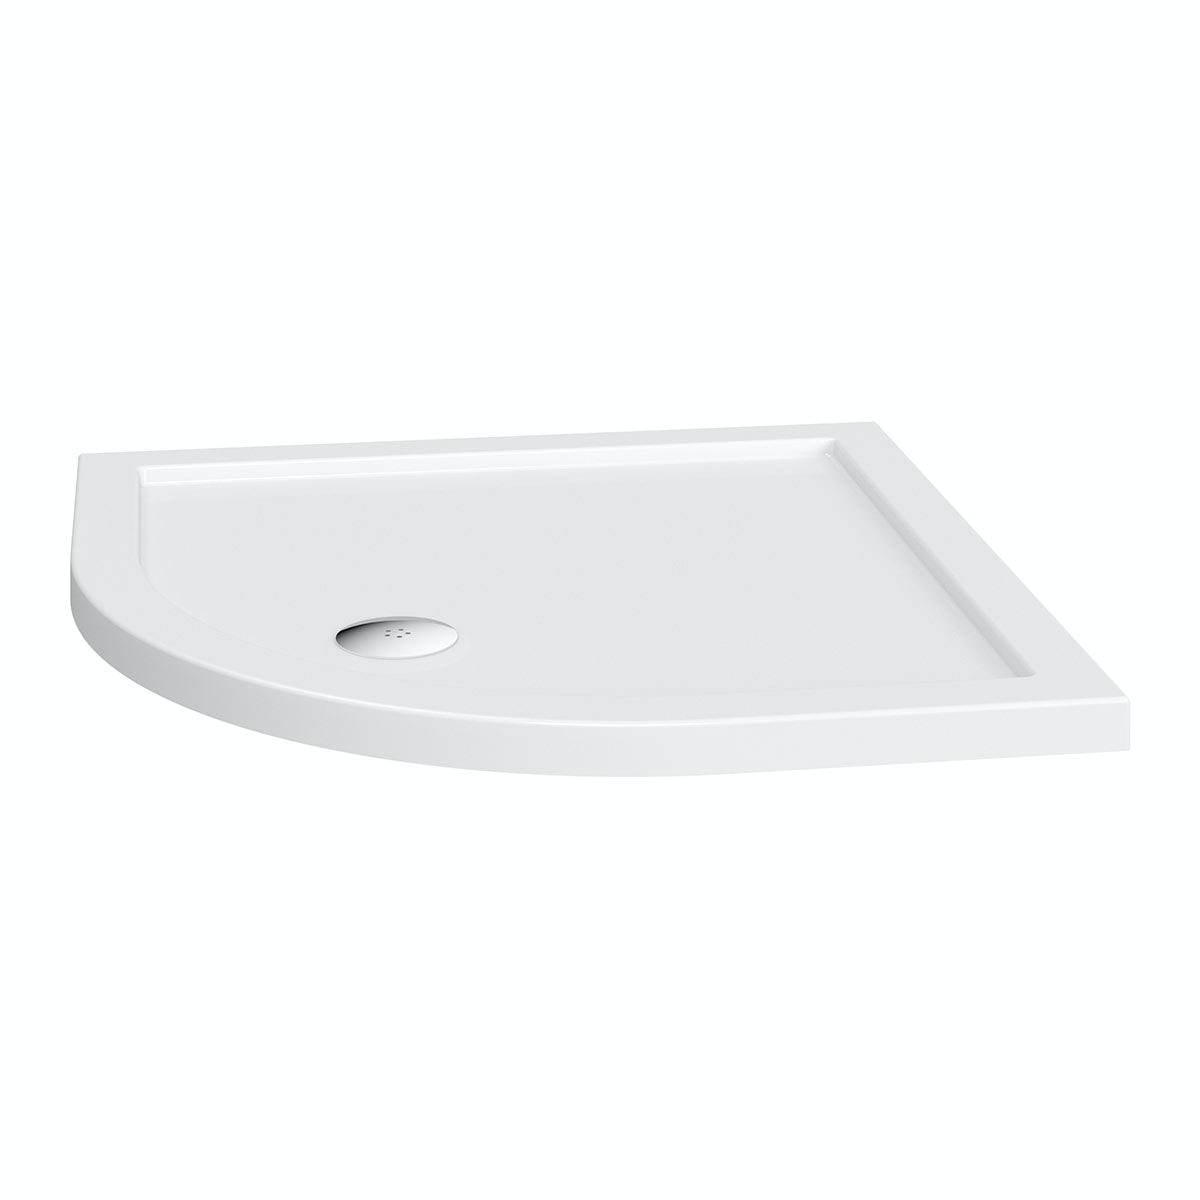 Orchard Quadrant stone shower tray 800 x 800